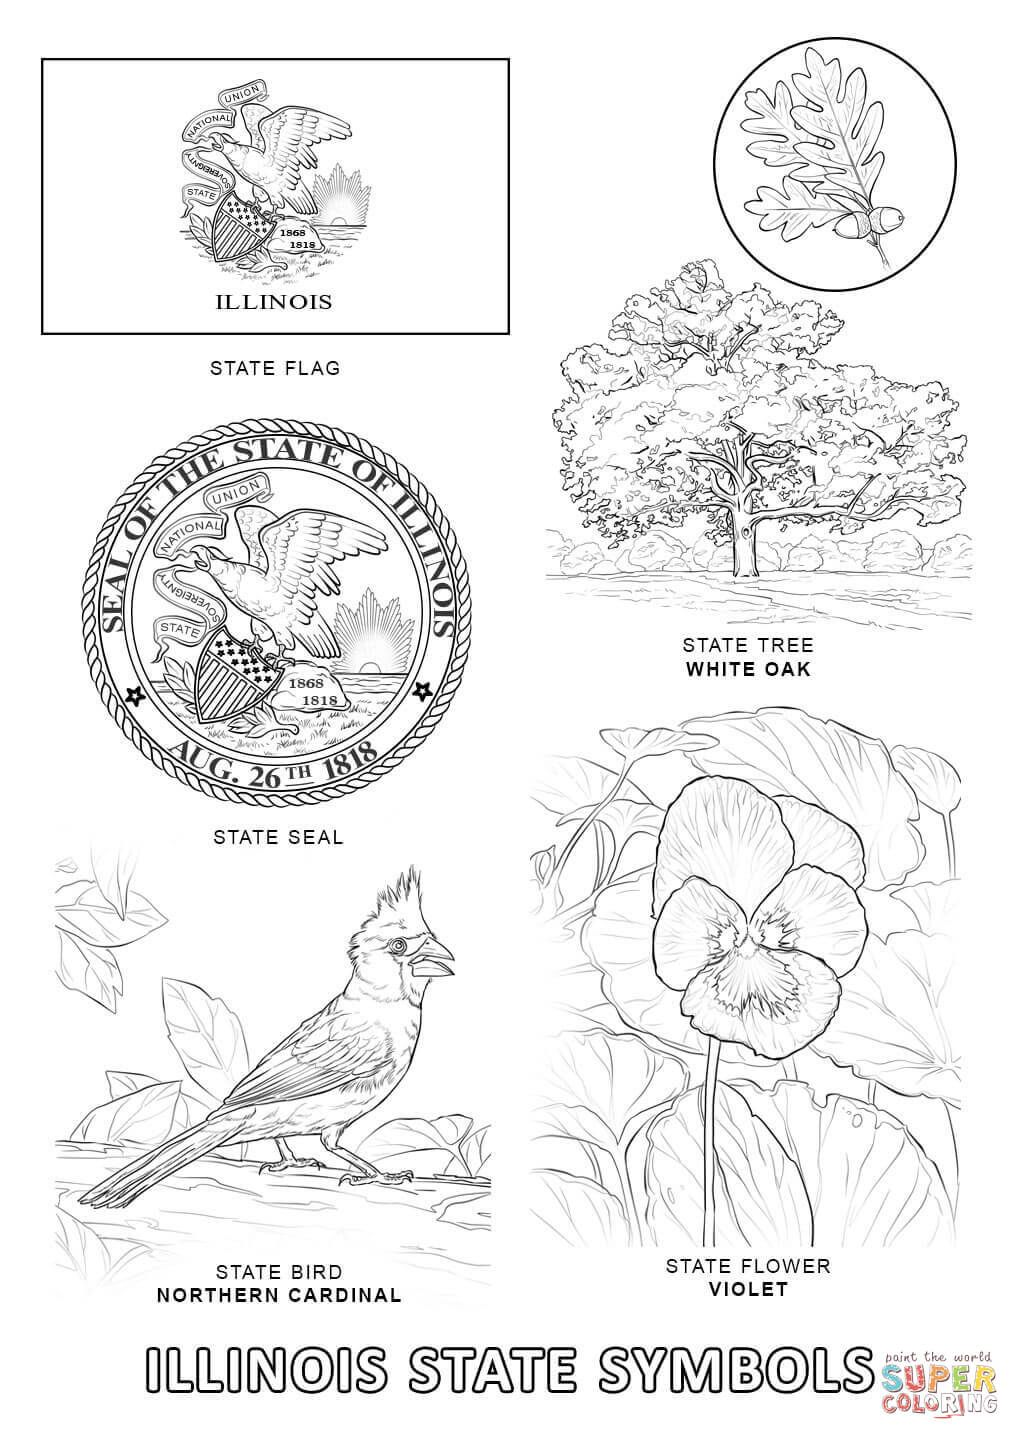 Click The Oklahoma State Tree Coloring Pages To View Printable Version Or Color It Online Compatible Wit Tree Coloring Page Flag Coloring Pages Coloring Pages